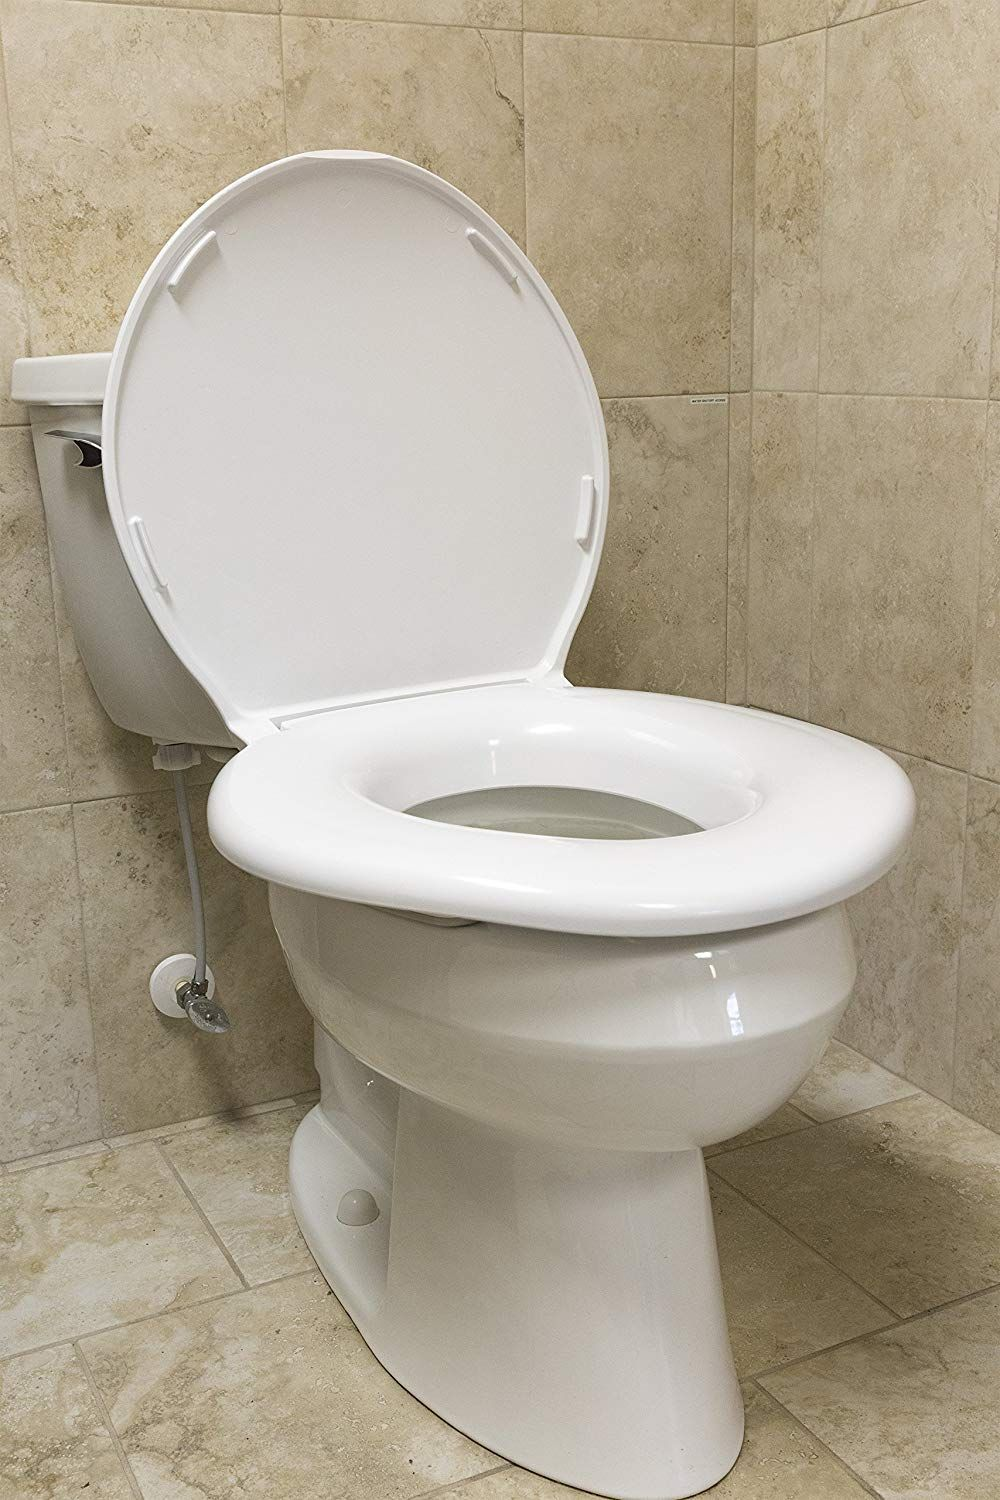 Toilet Seat For Heavy Person Heavy Duty Toilet Seat Reviews 2020